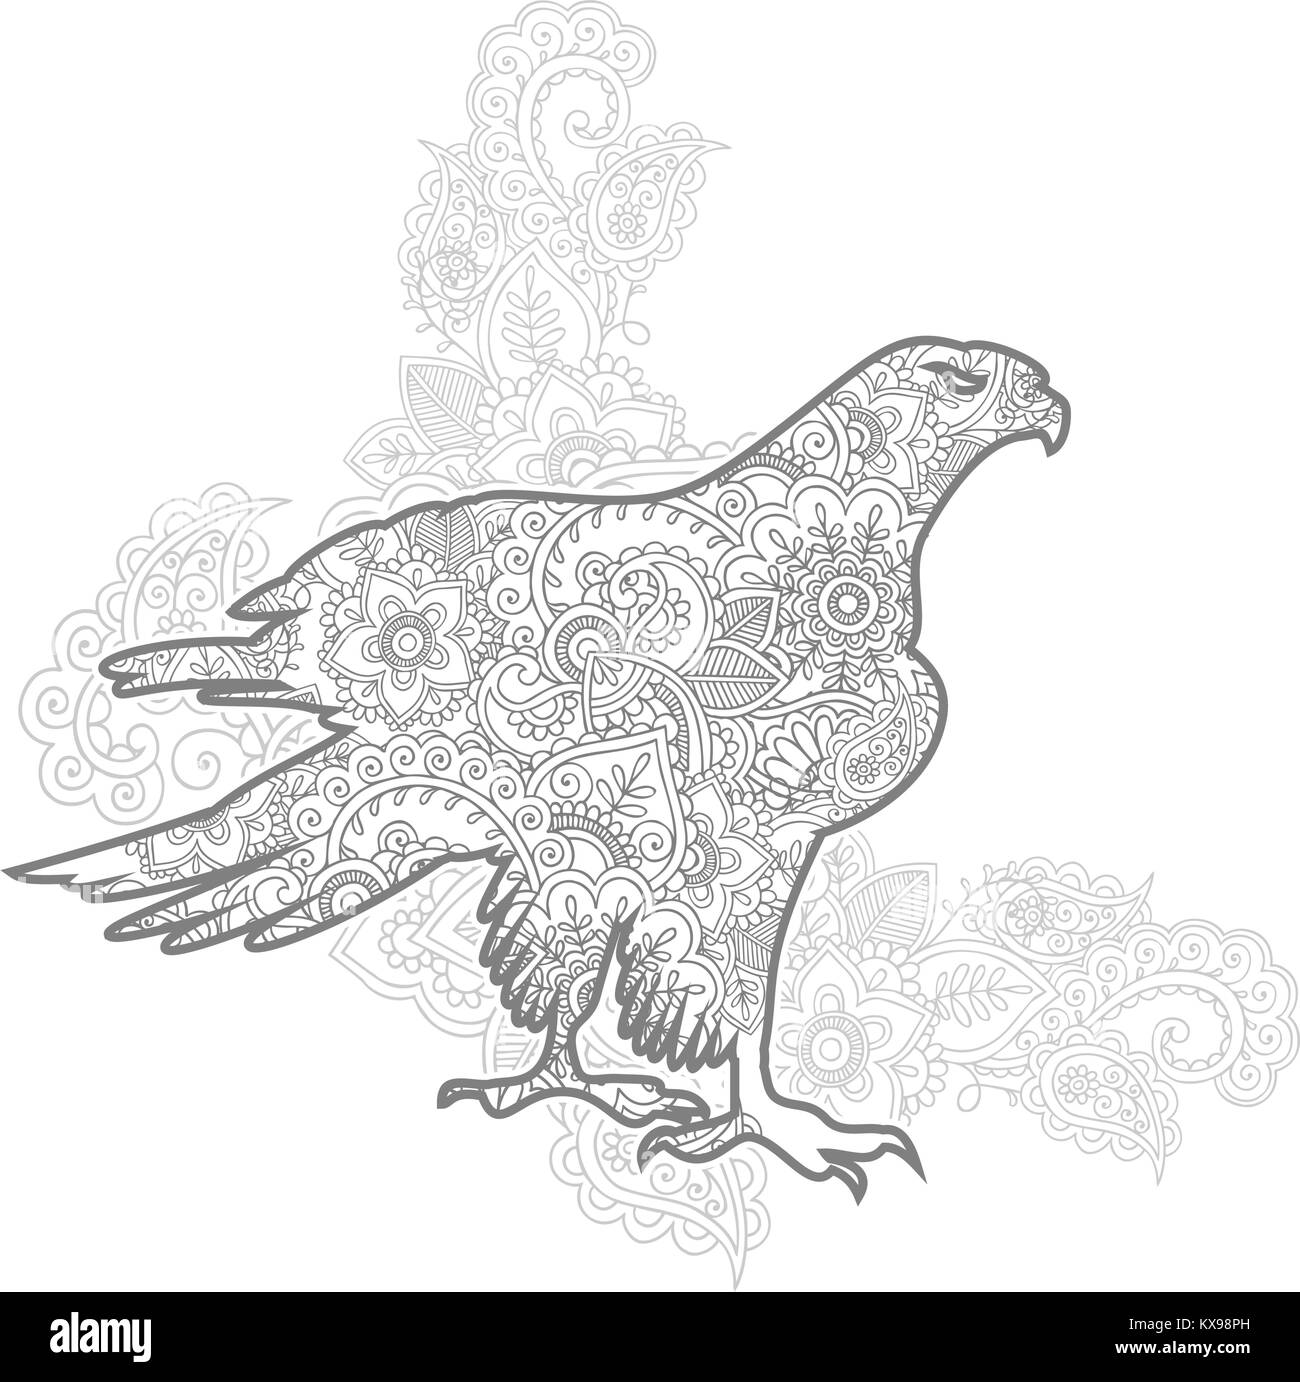 Hand Drawn Eagle Doodle Animal Paisley Adult Stress Release Coloring Page Zentangle Vector